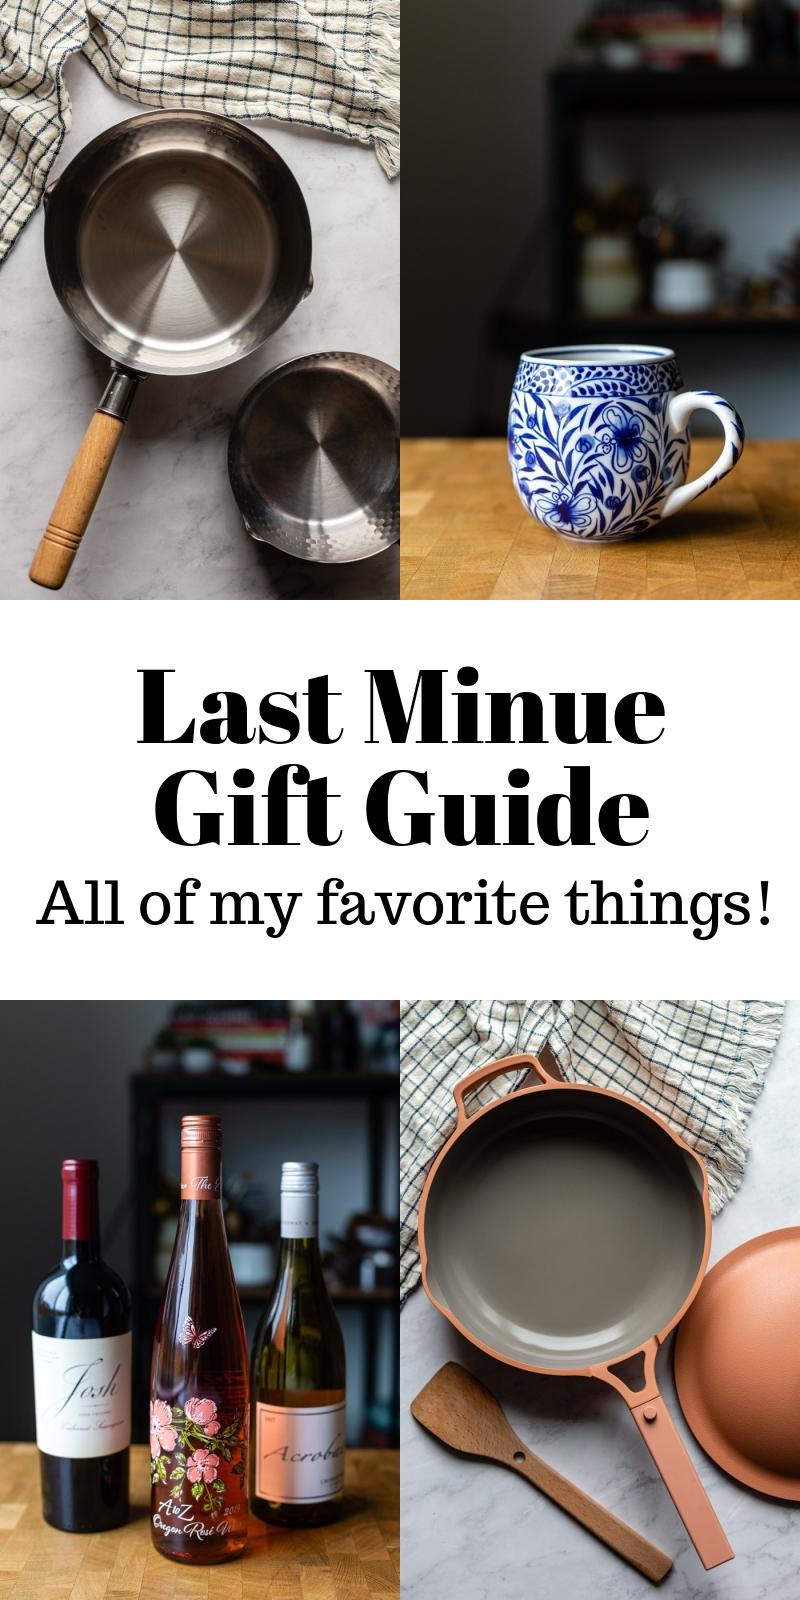 last minute gift guide with 4 images of gift ideas